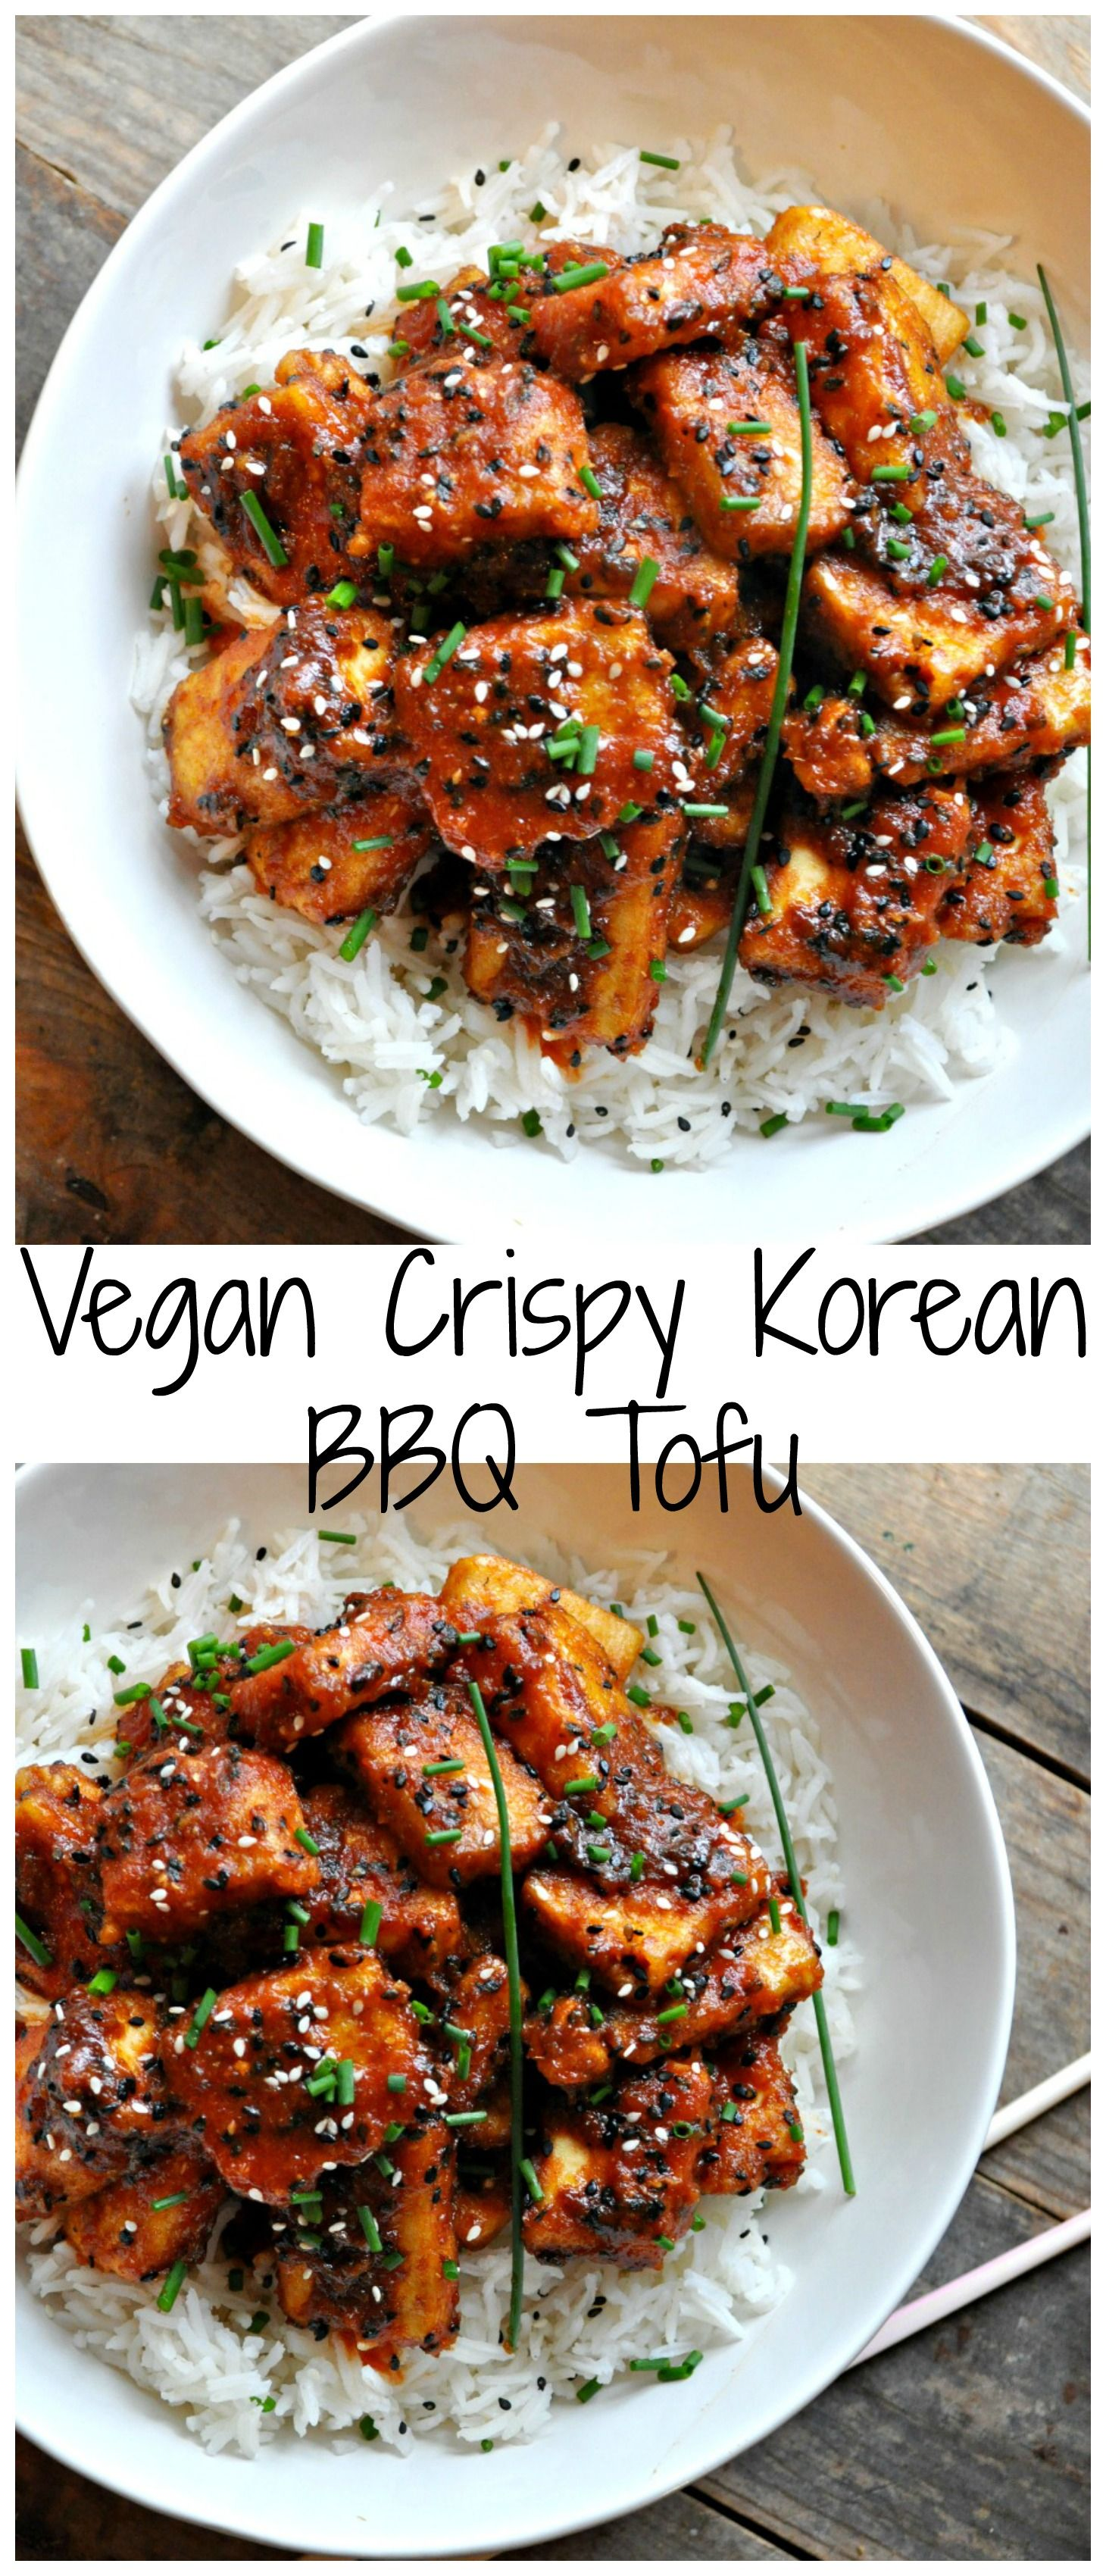 Vegan Crispy Korean BBQ Tofu #healthyeating